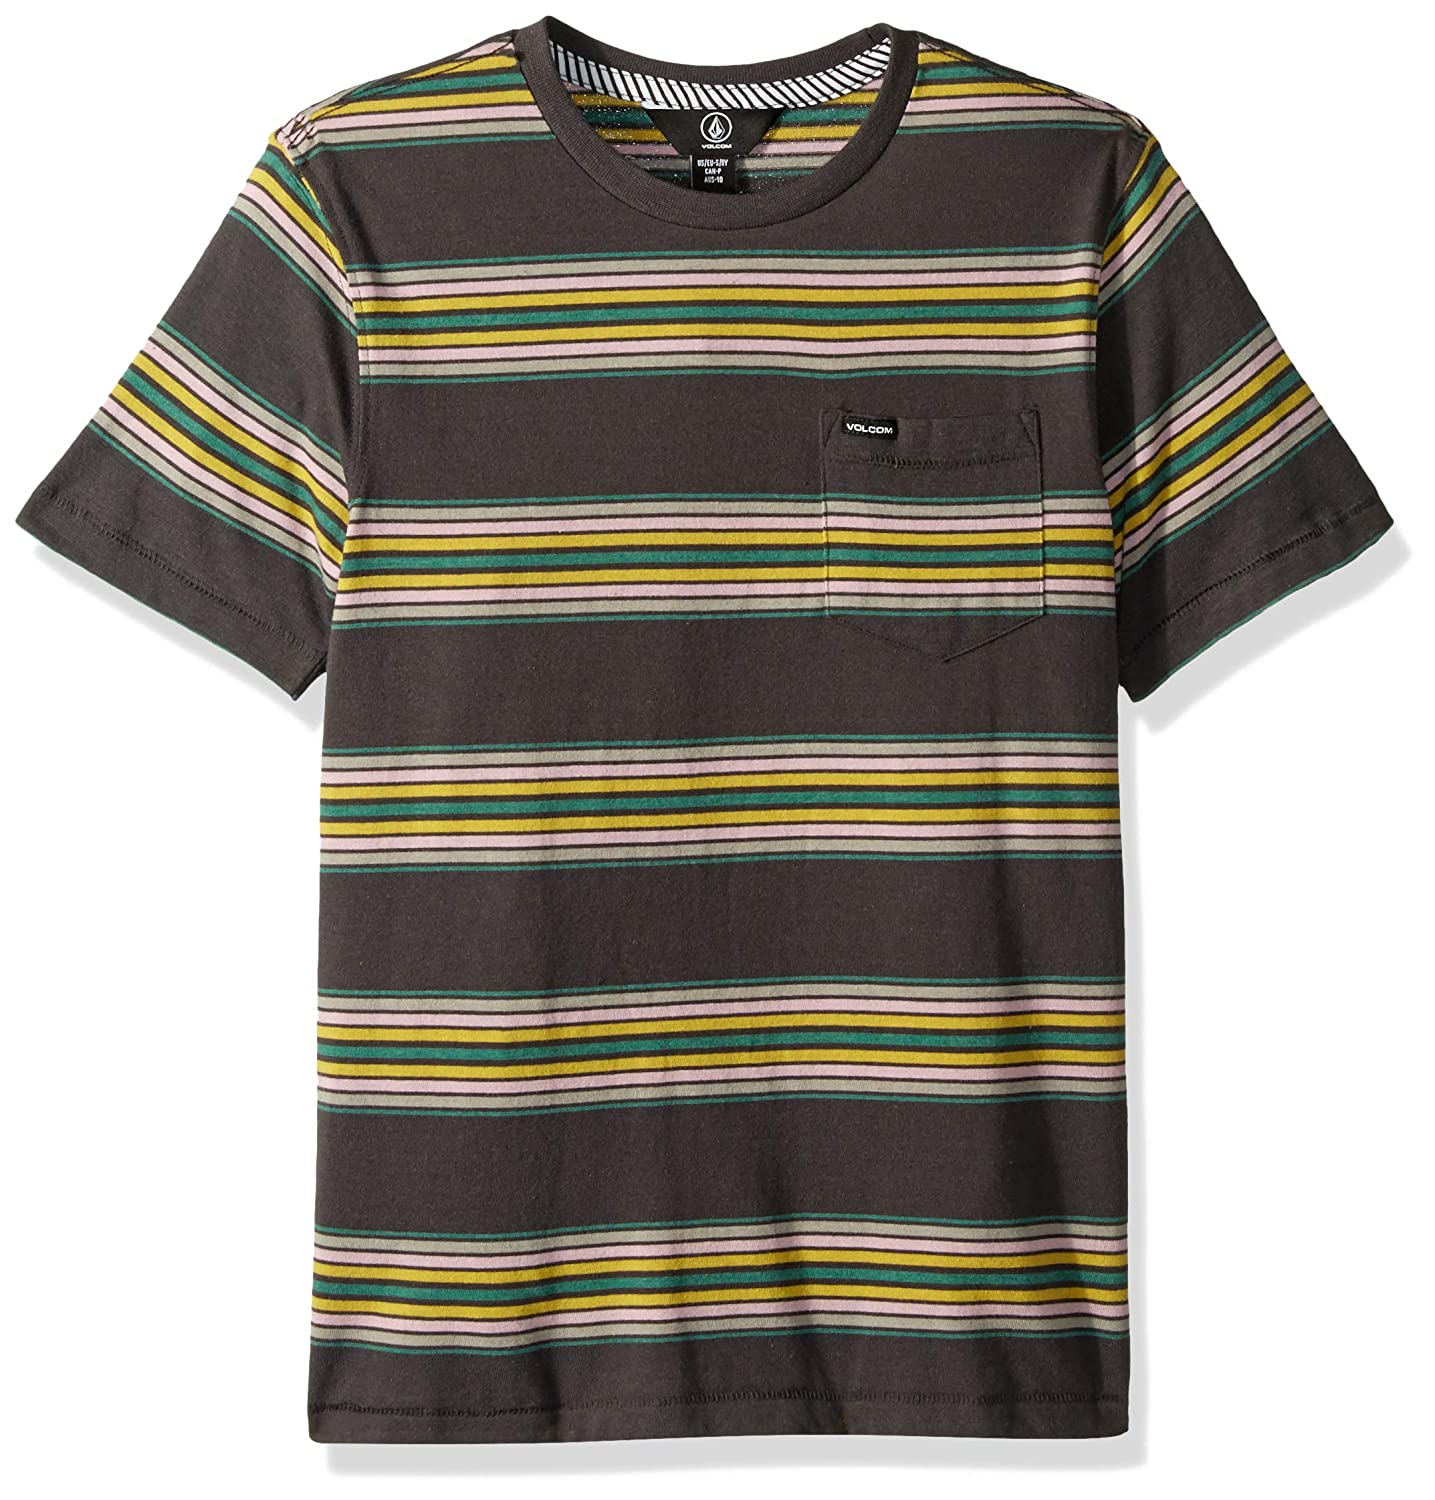 2b9977fd Amazon.com: Volcom Big Boys' Idle Crew Short Sleeve Striped Pocket Tee:  Clothing